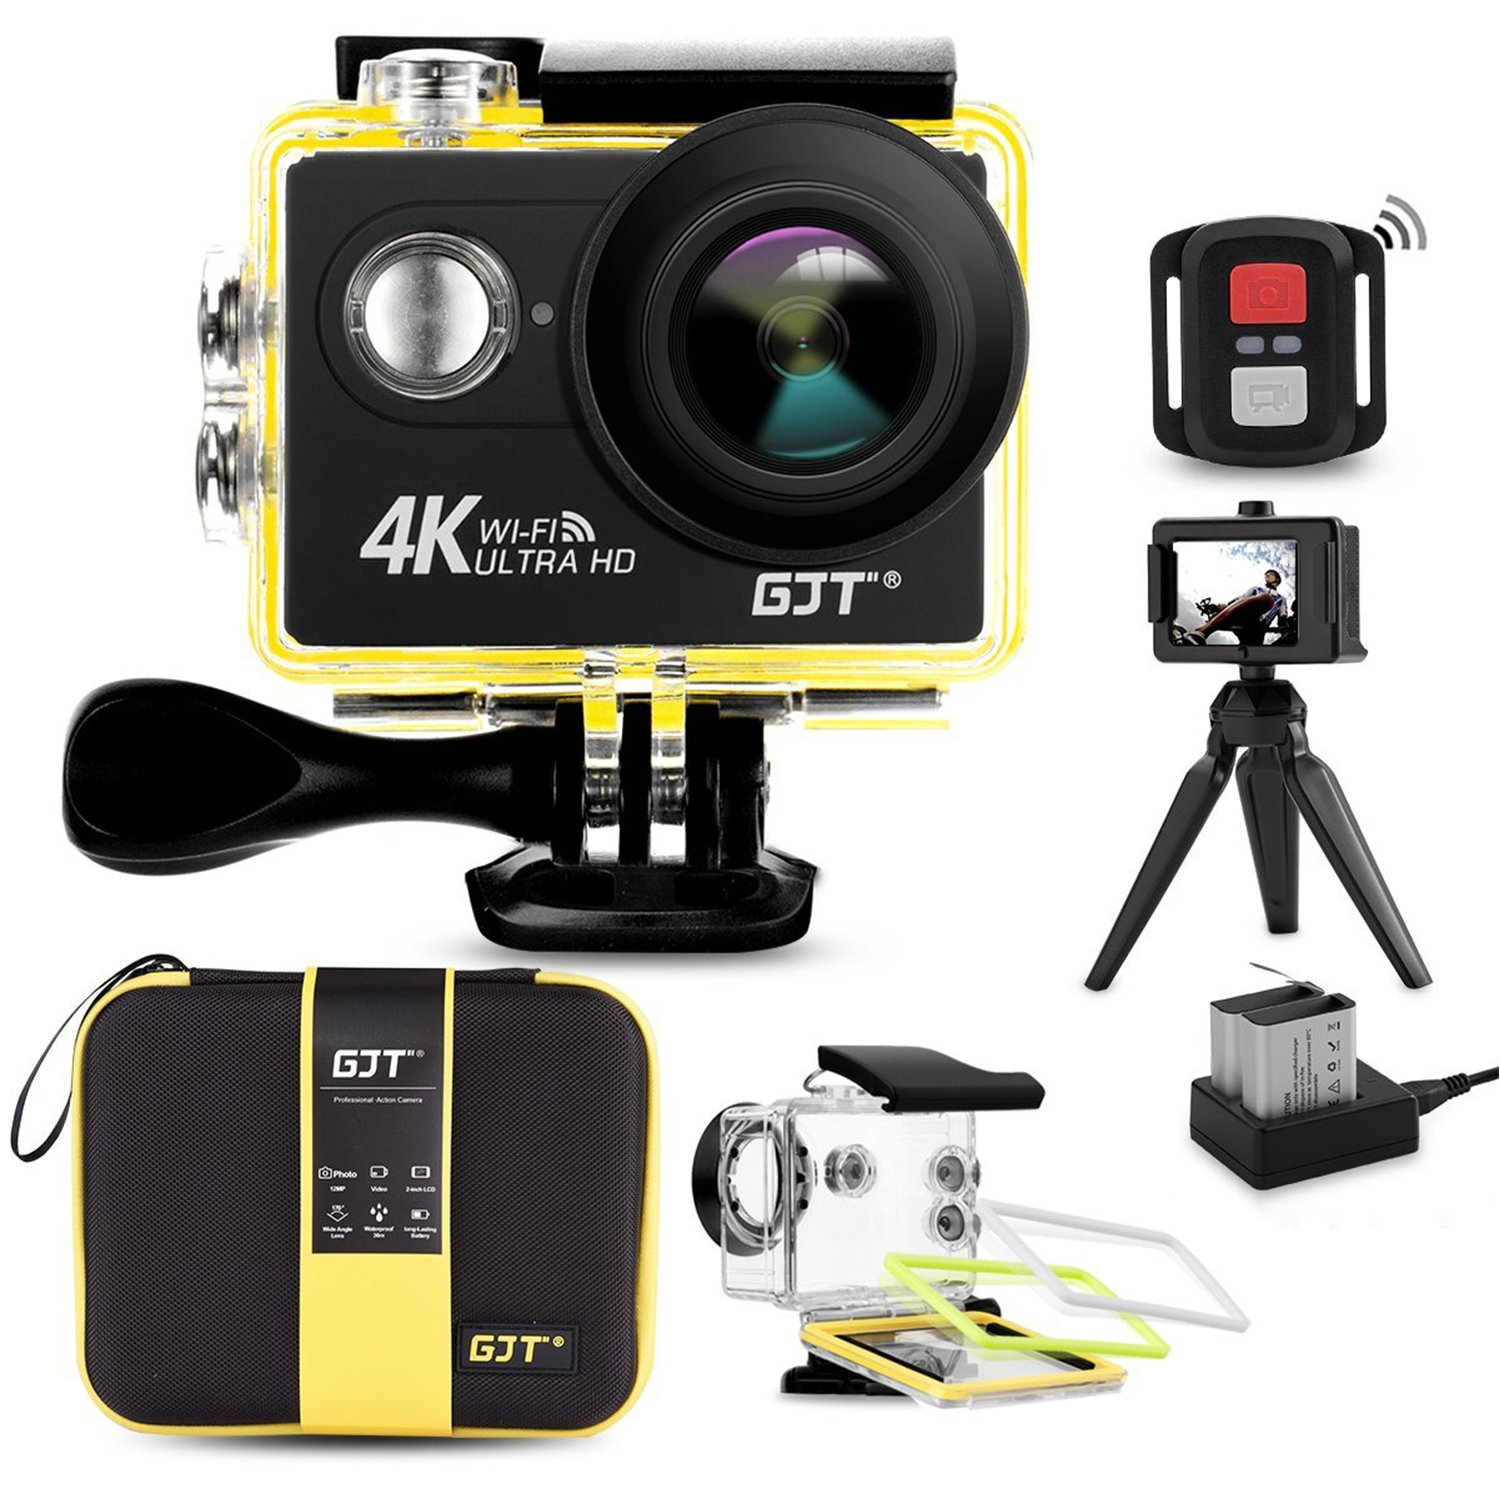 GJT GP1R 4K Sports Action Camera Portable Package,12MP Ultra HD WiFi 30M Waterproof DV Camcorder 2 Inch LCD Screen, 170 Degree Wide Angle Lens,2.4Ghz Remote Control, 2x1350mAh Batteries by GJT